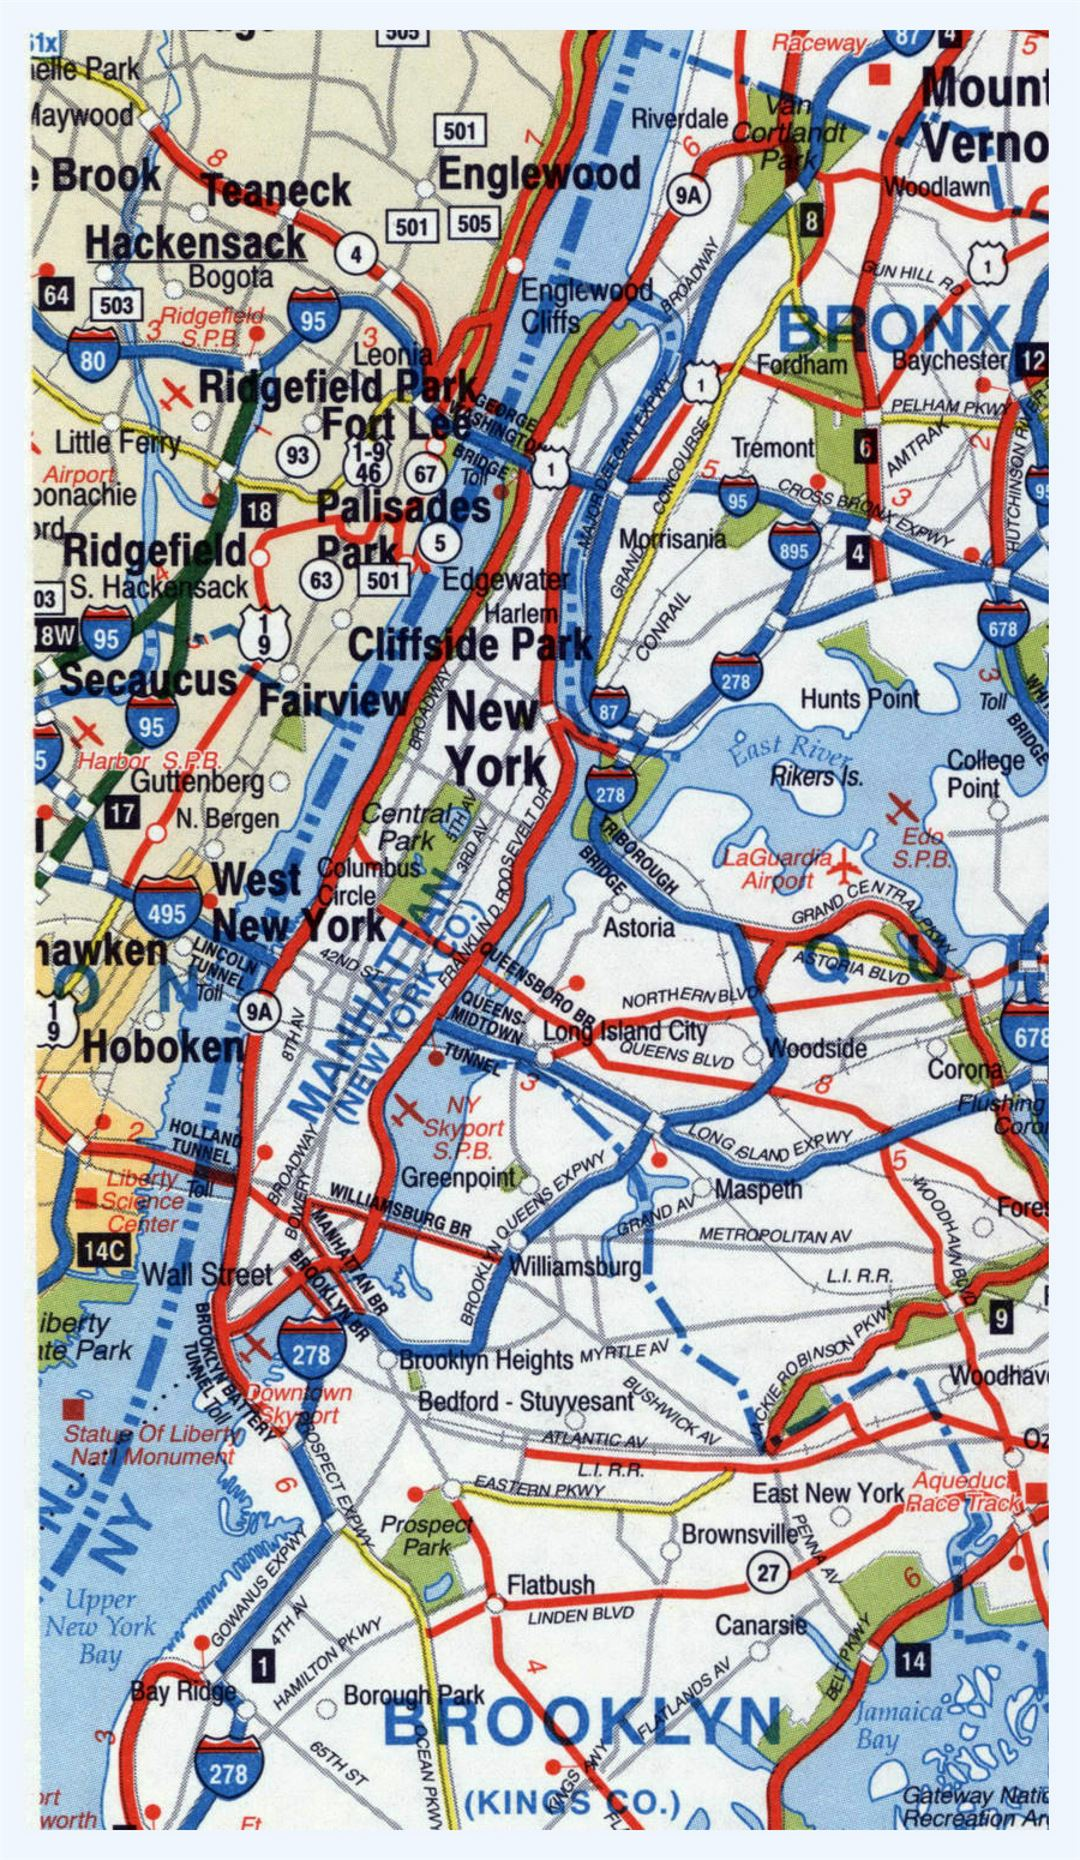 Highways map of Manhattan and surrounding area